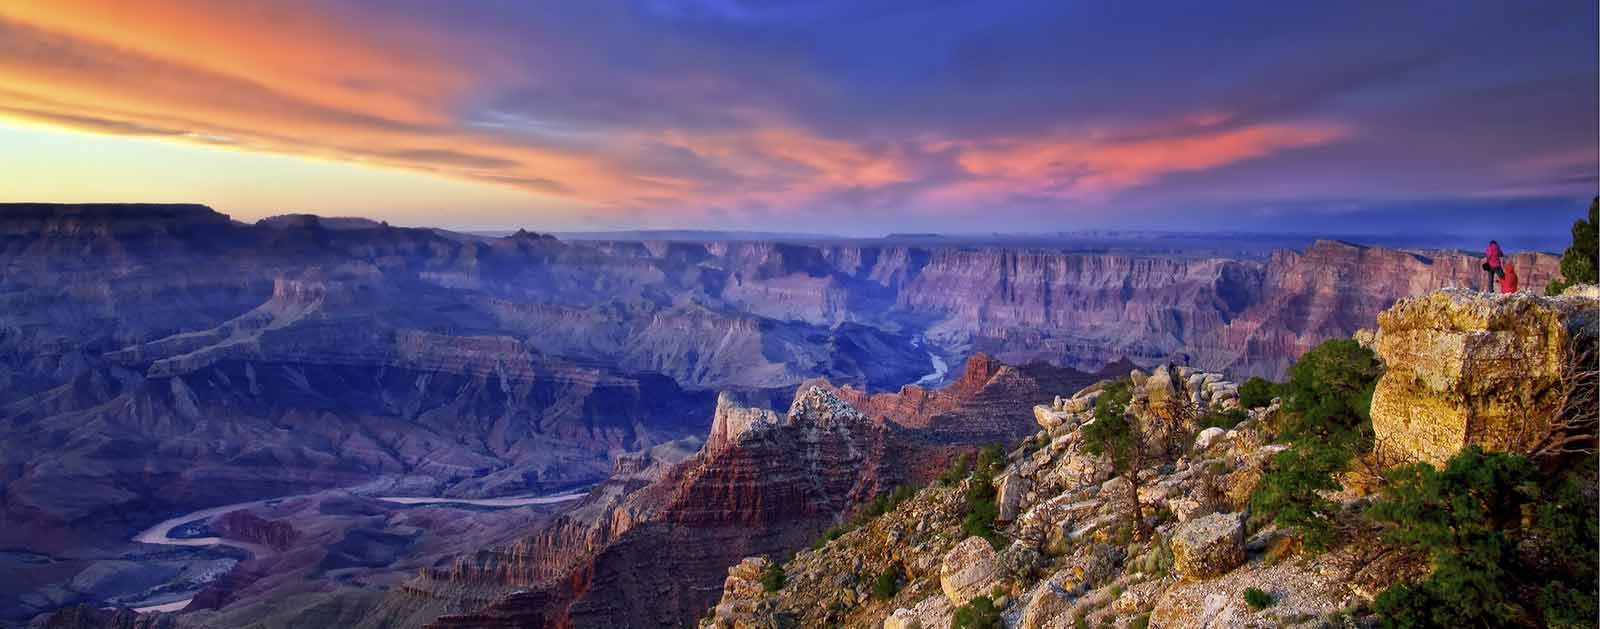 colorado-river-in-grand-canyon-credit-phil-roussin-flickrcc-header.jpg